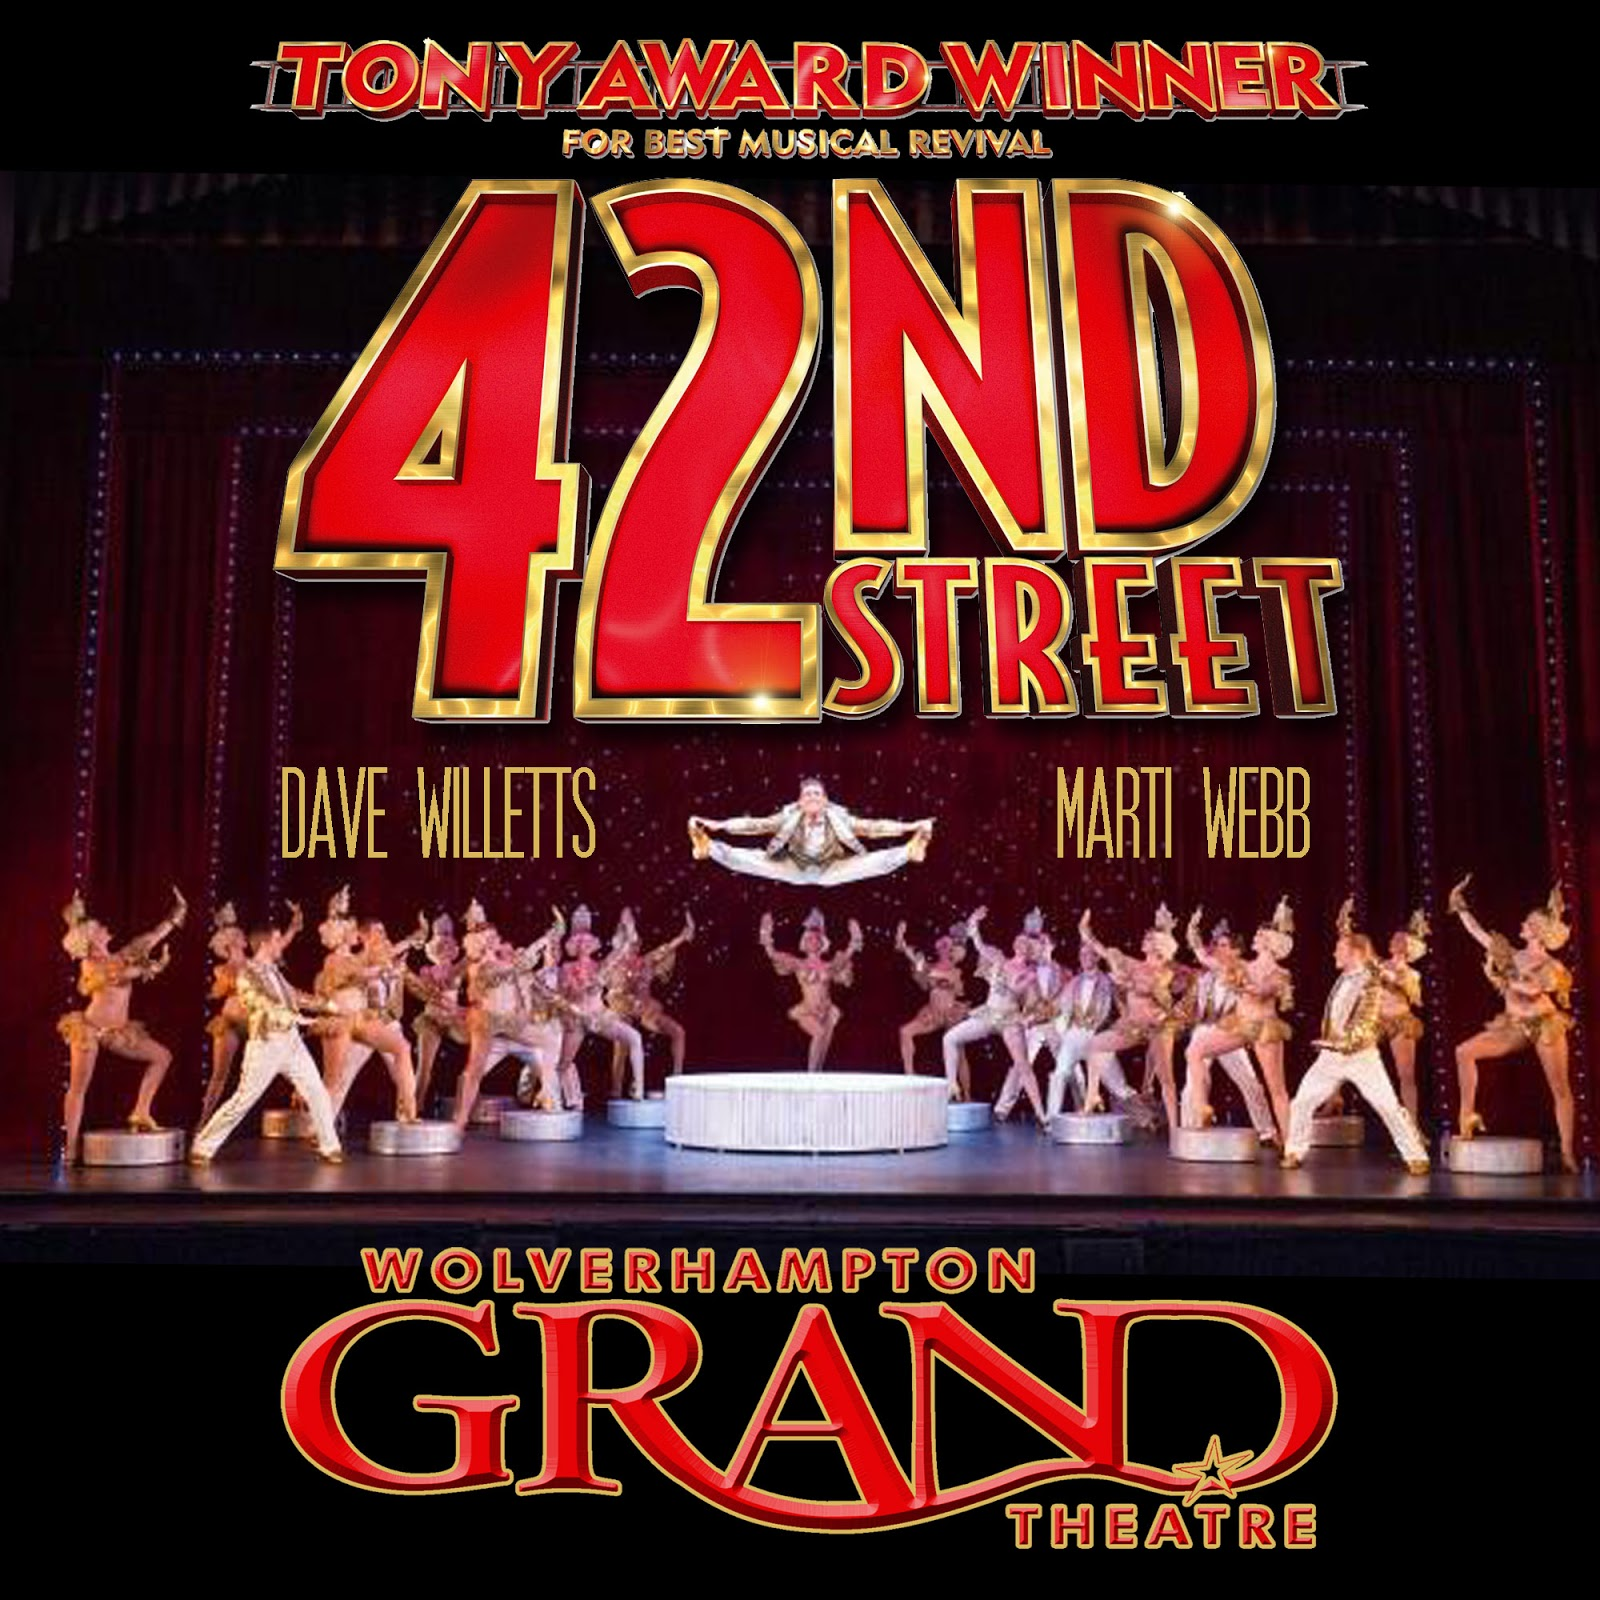 The Theatre Blog: 42ND STREET (UK Tour) October 2012